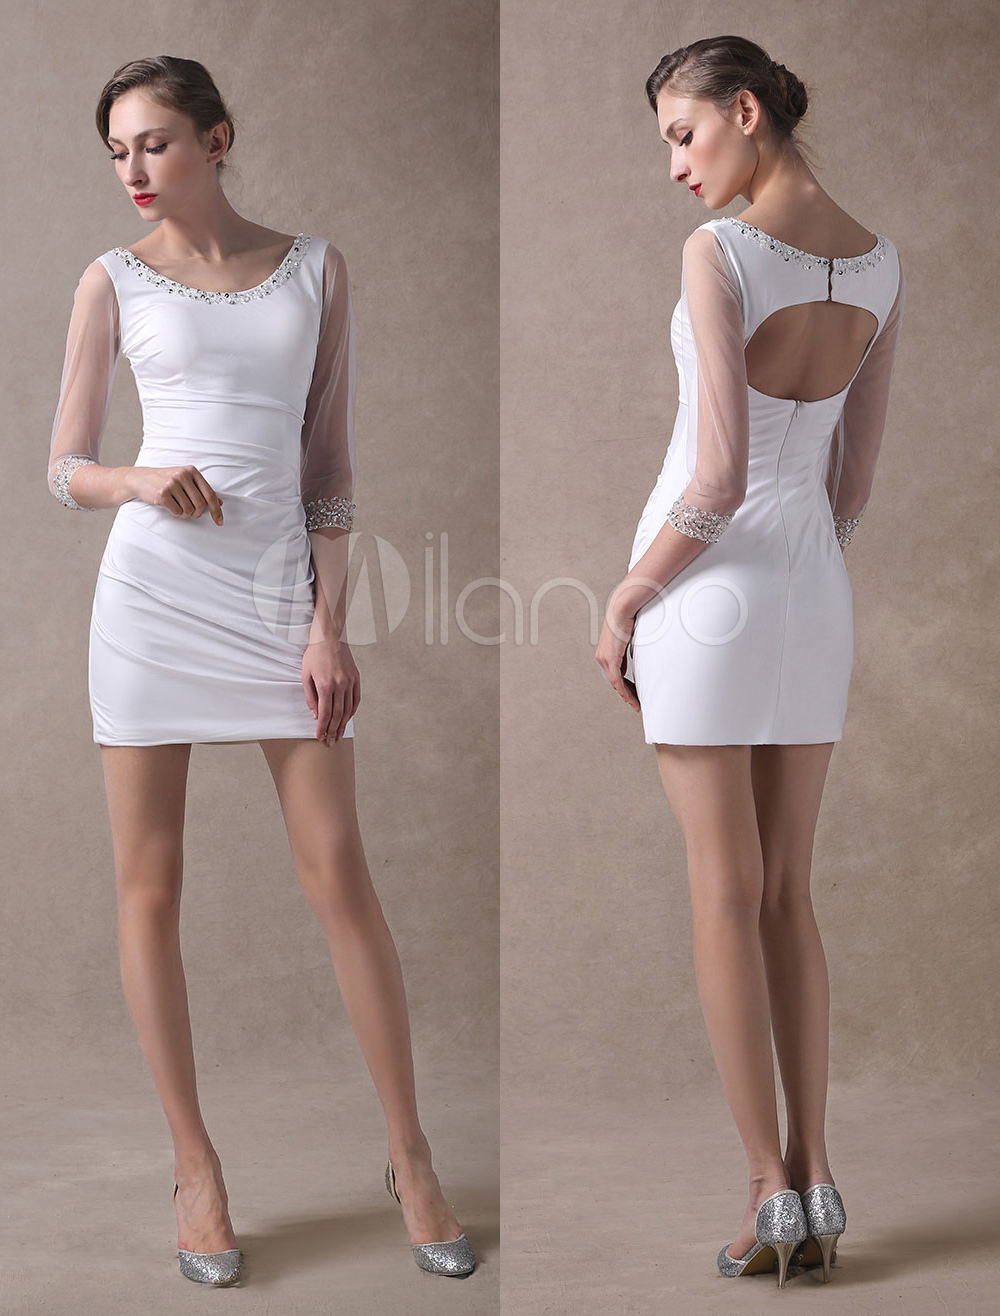 Buy Mother Of The Bride Dresses White Sheath Short Beaded Open Back Long Sleeve Wedding Guest Dresses for $117.44 in Milanoo store